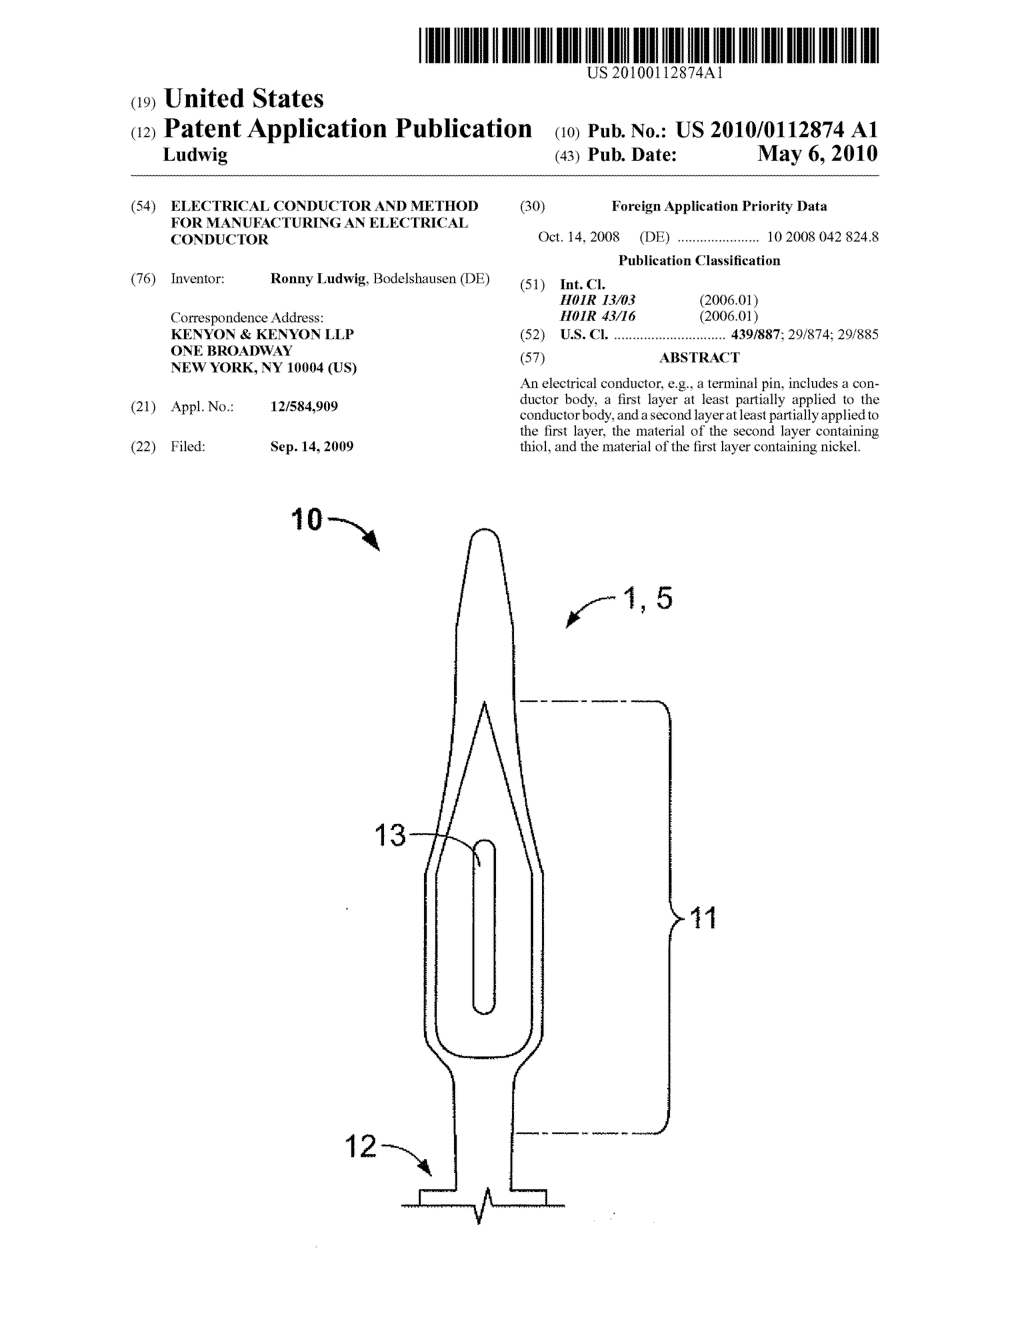 Electrical conductor and method for manufacturing an electrical conductor - diagram, schematic, and image 01